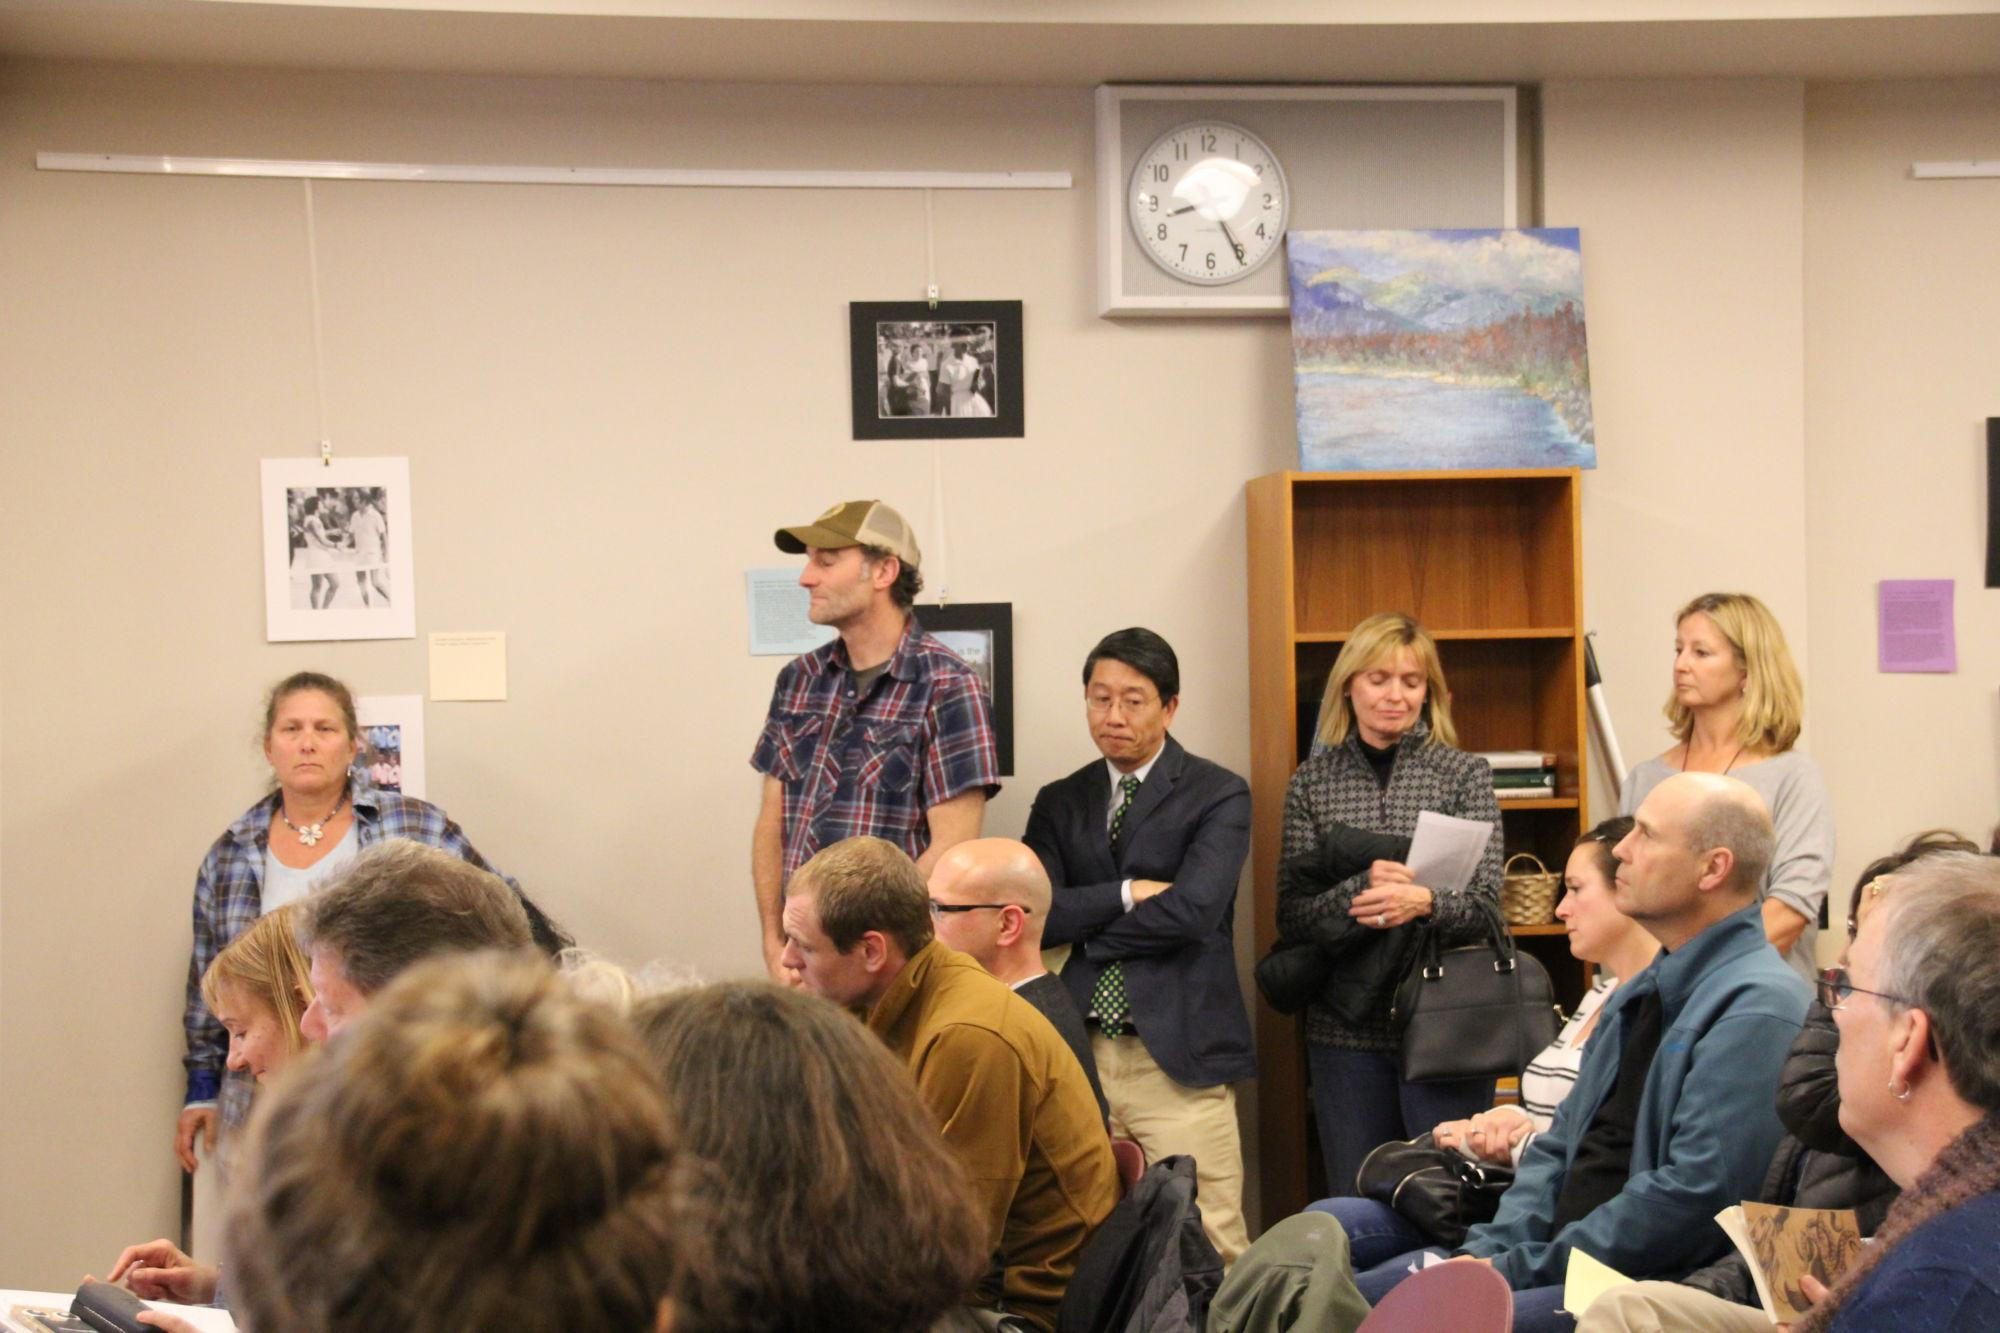 Members+of+the+community+came+forward+to+speak+about+their+concerns+with+recent+program+cuts+around+the+district+at+the+last+board+meeting.+